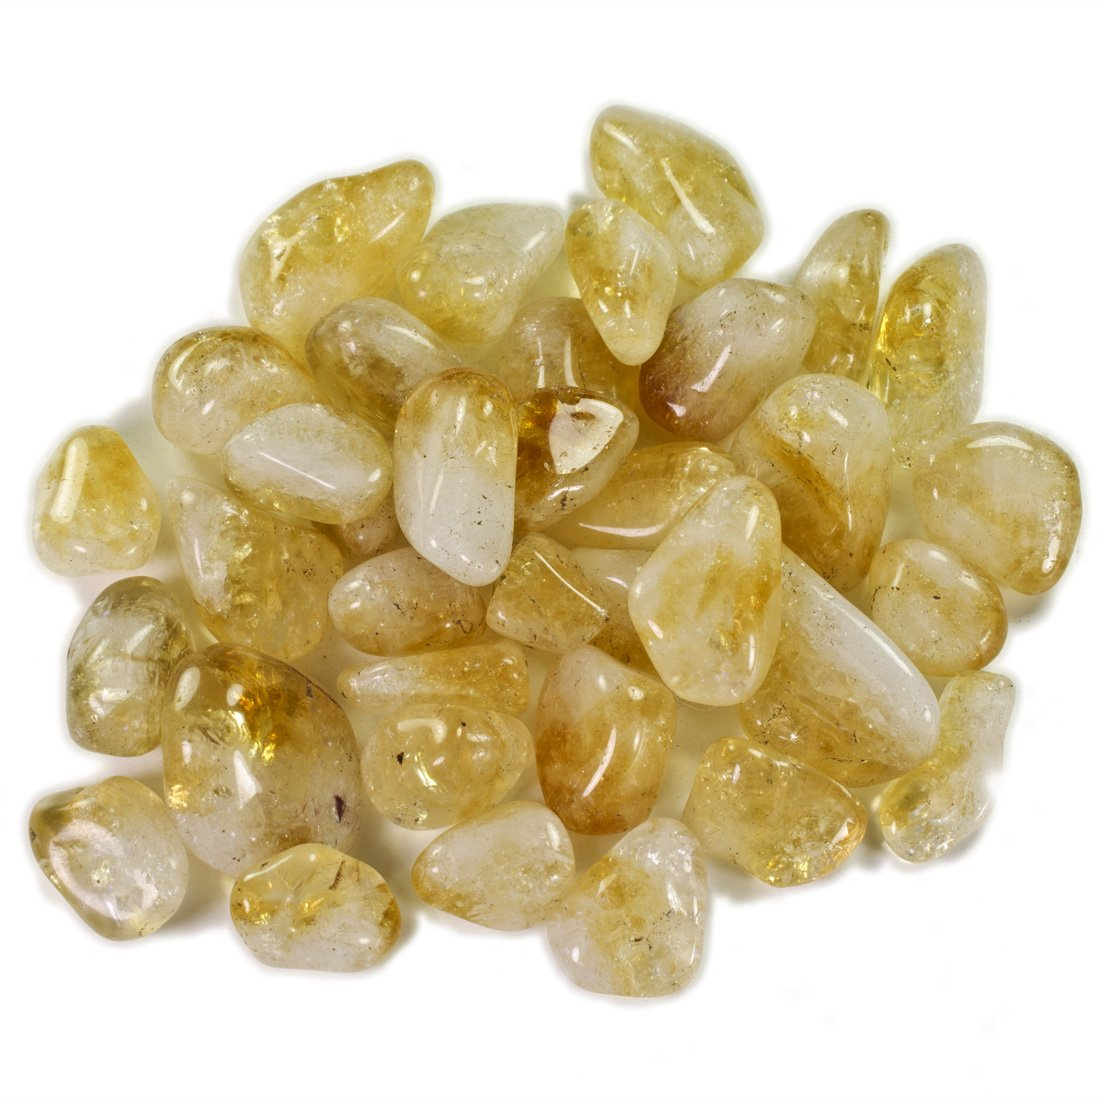 Hypnotic Superior Materials: 1lb Bulk Tumbled Citrine Stones from Brazil - Natural Polished Gemstone Supplies for Wicca, Reiki, and Energy Crystal Healing *Wholesale Lot*